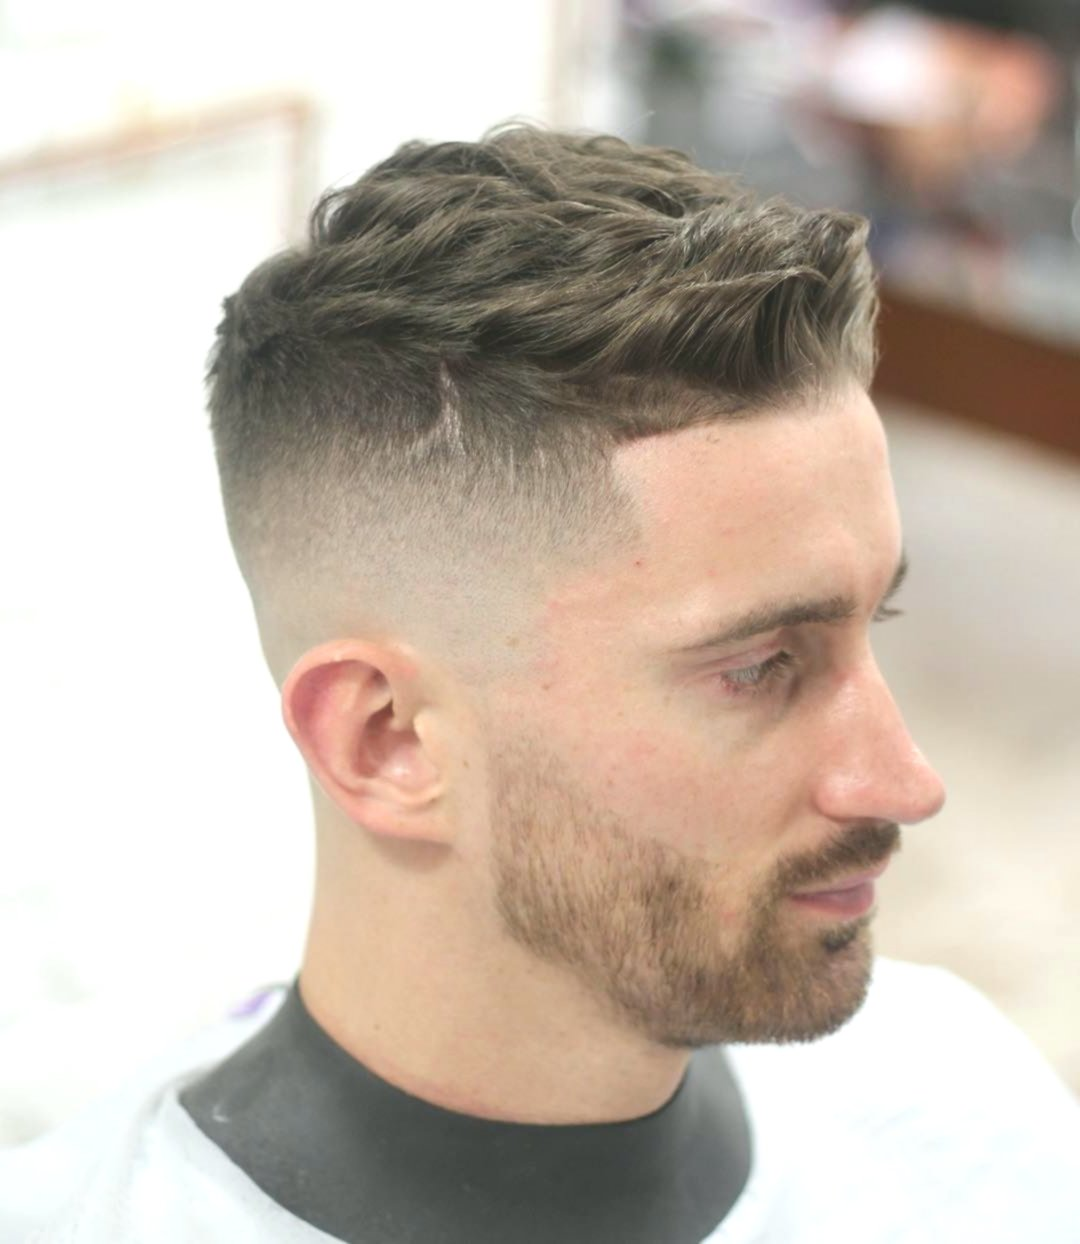 finest modern haircuts men's model-Lovely Modern Haircuts Men Construction